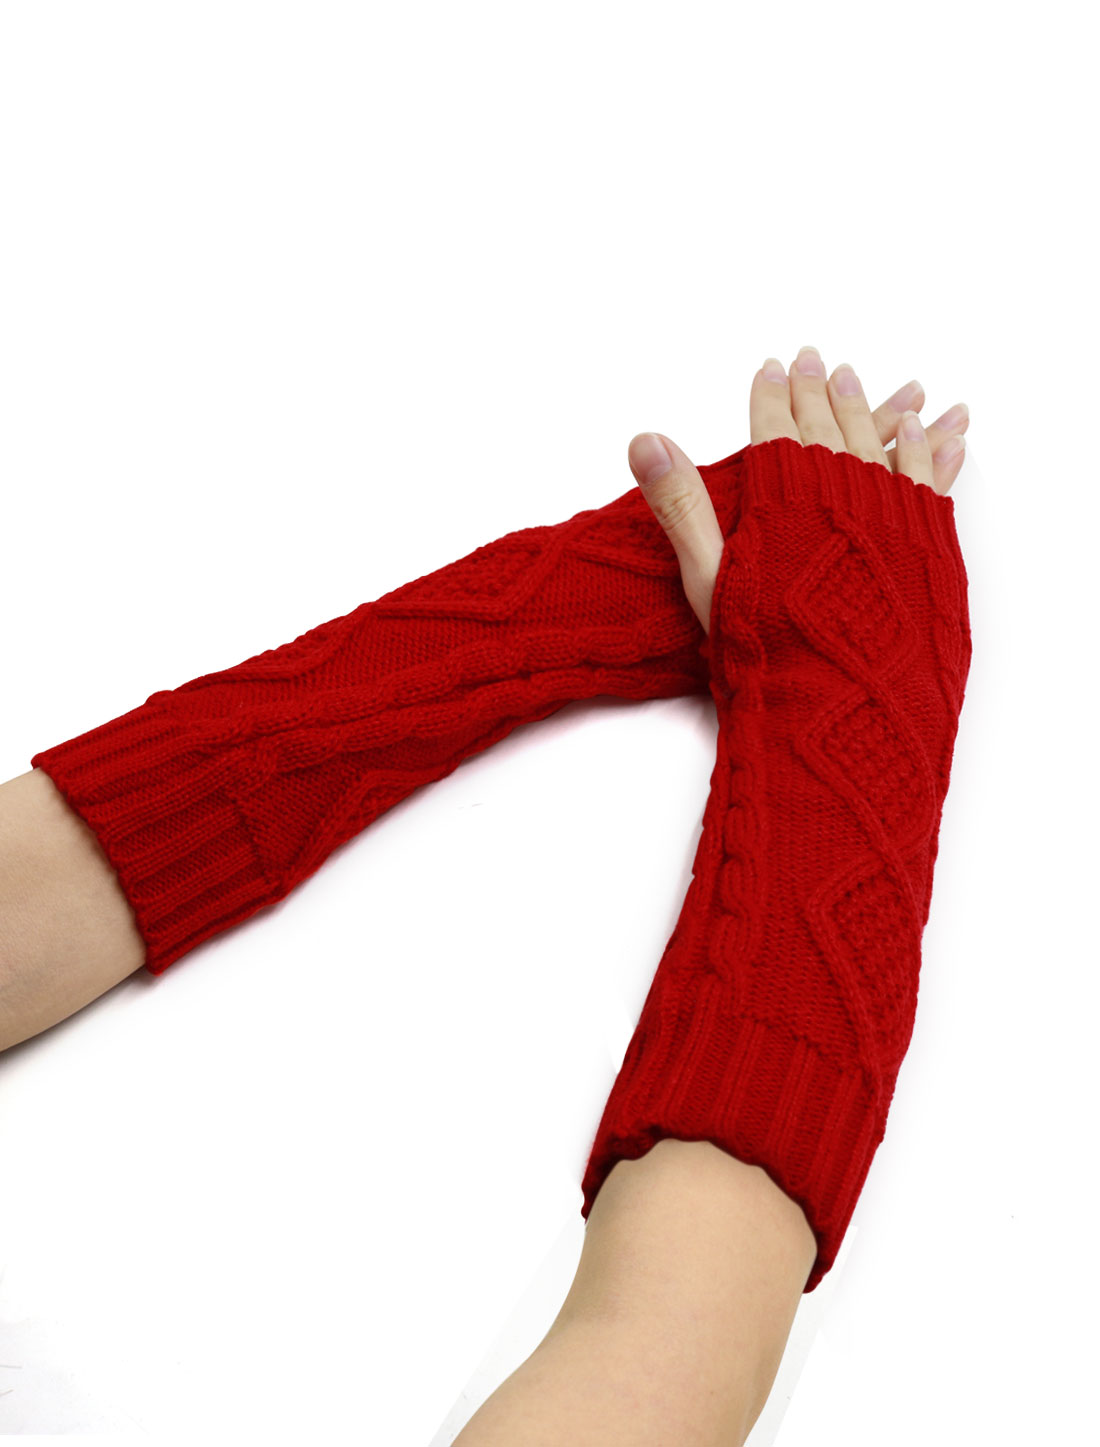 Women Elbow Length Argyle Design Cable Knit Arm Warmers Pair Red